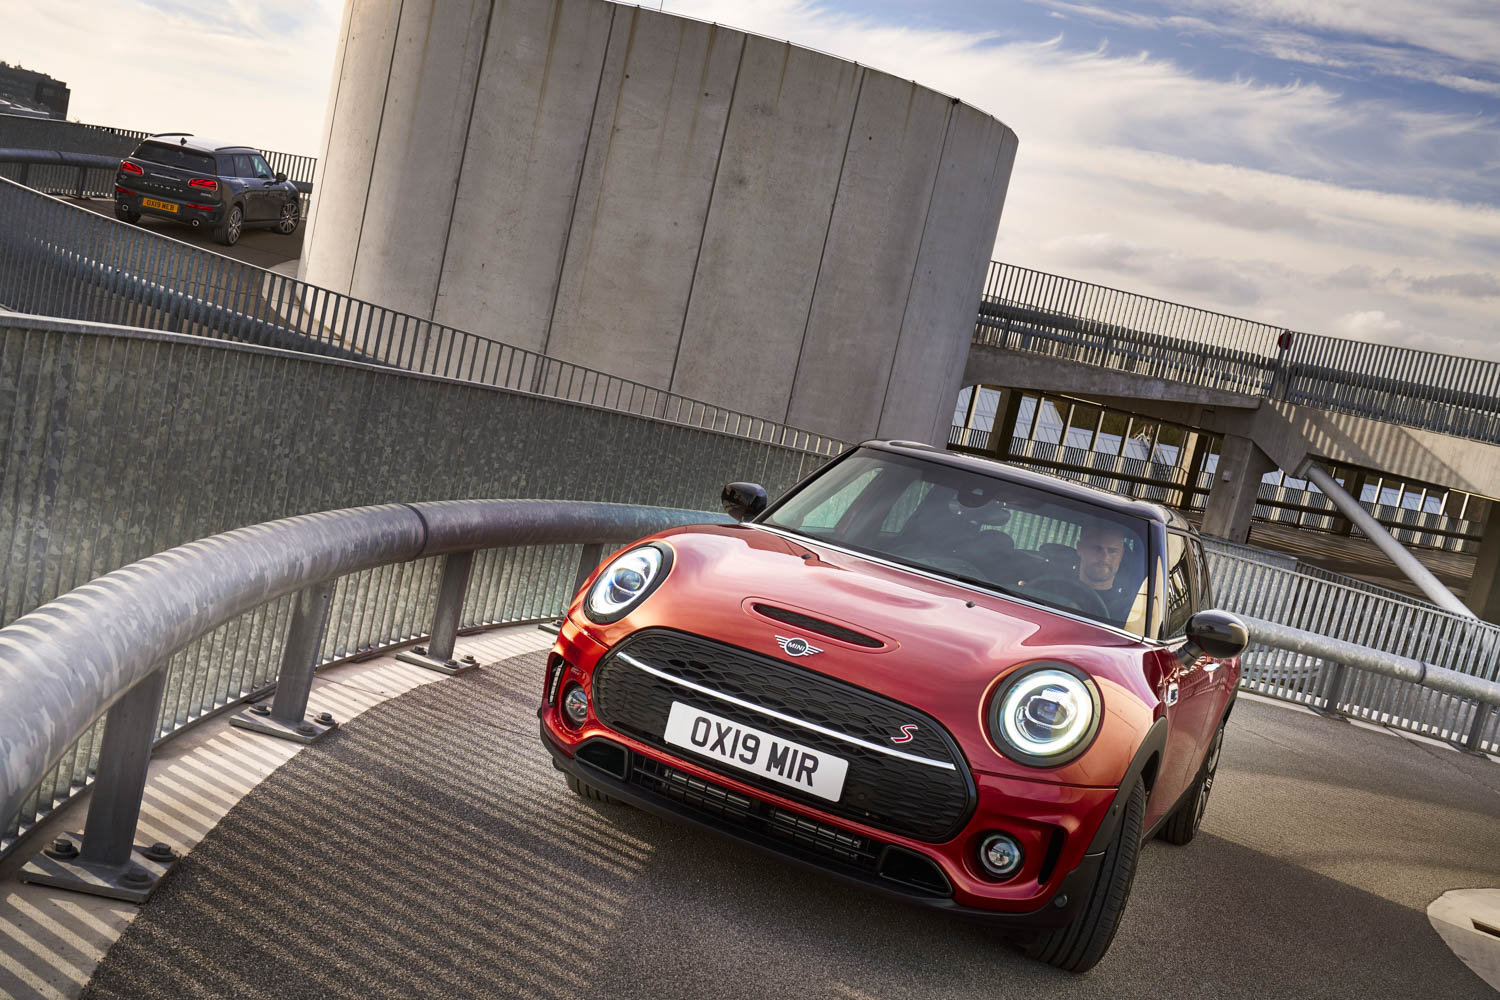 2019 MINI Clubman S driving